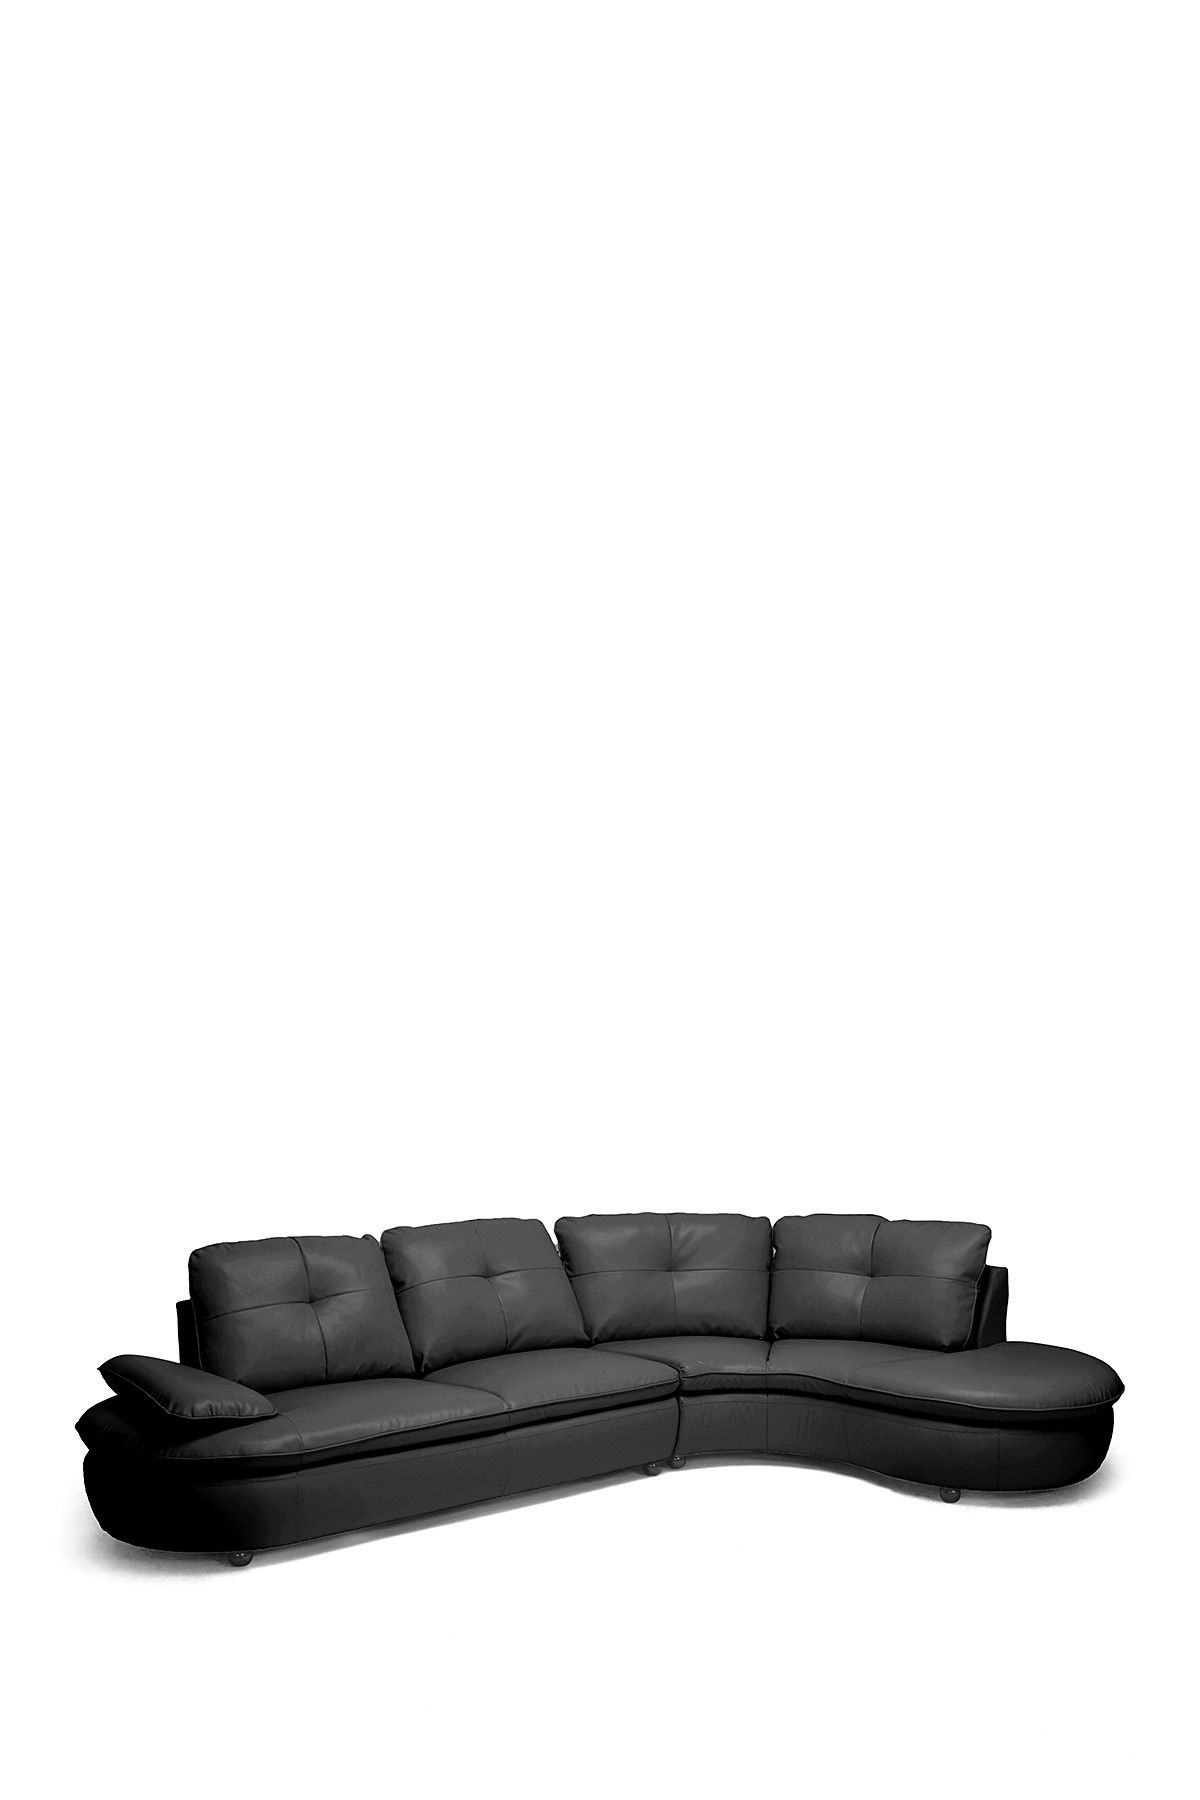 W I Modern Hilaria Black Leather Modern Sectional Sofa